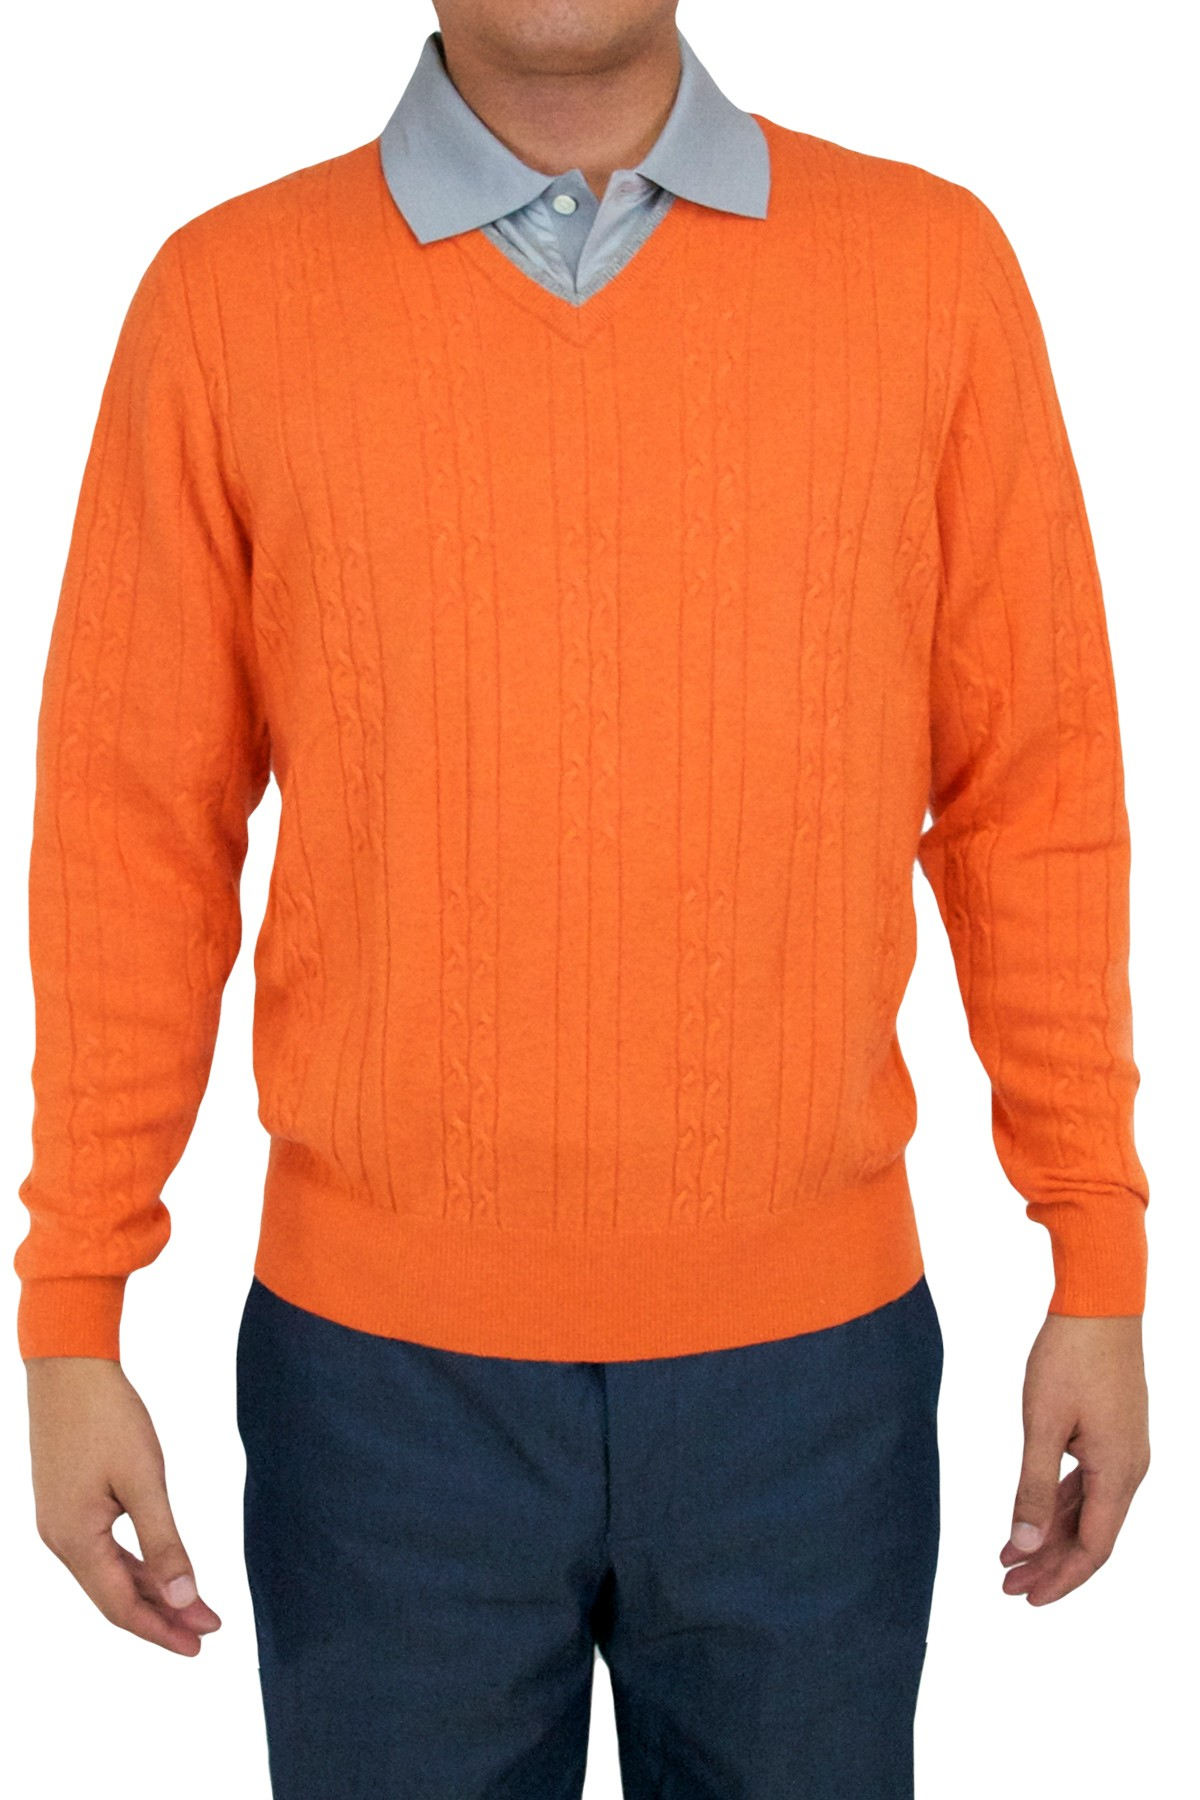 "Aristo 18 ""Selkirk"" V-Neck Broken Cable Knit Sweater - Cashmere"